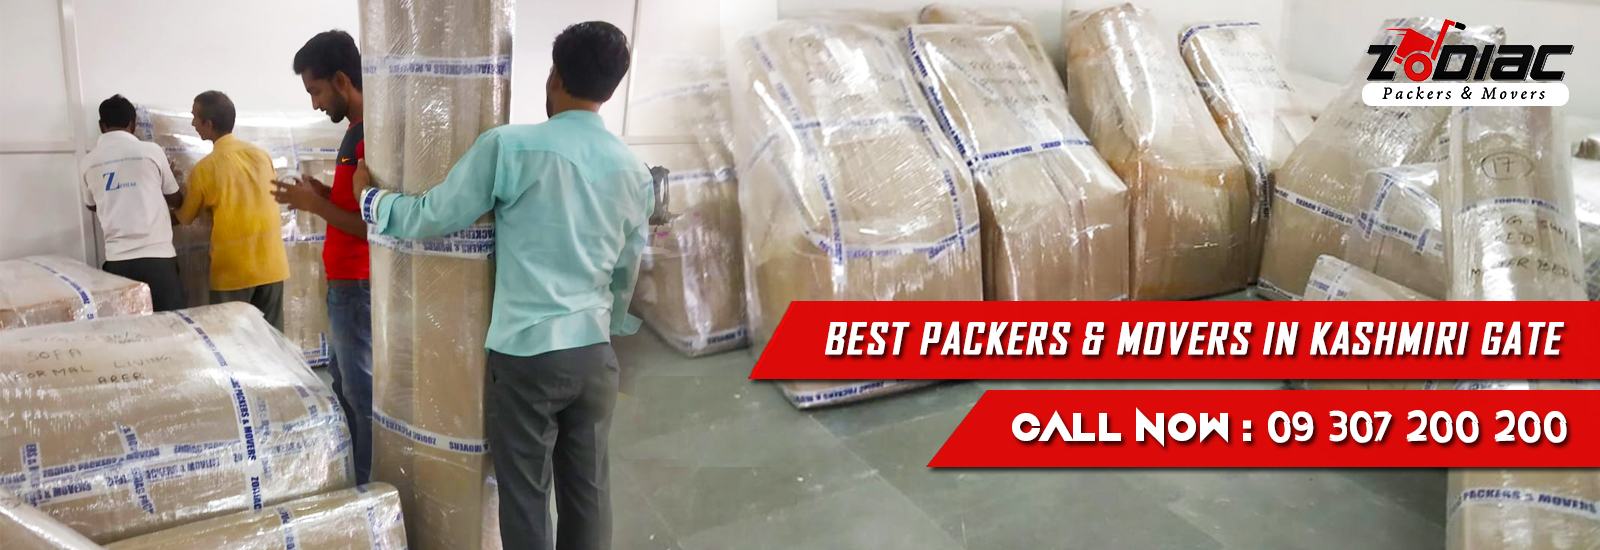 Packers and Movers in Kashmiri Gate